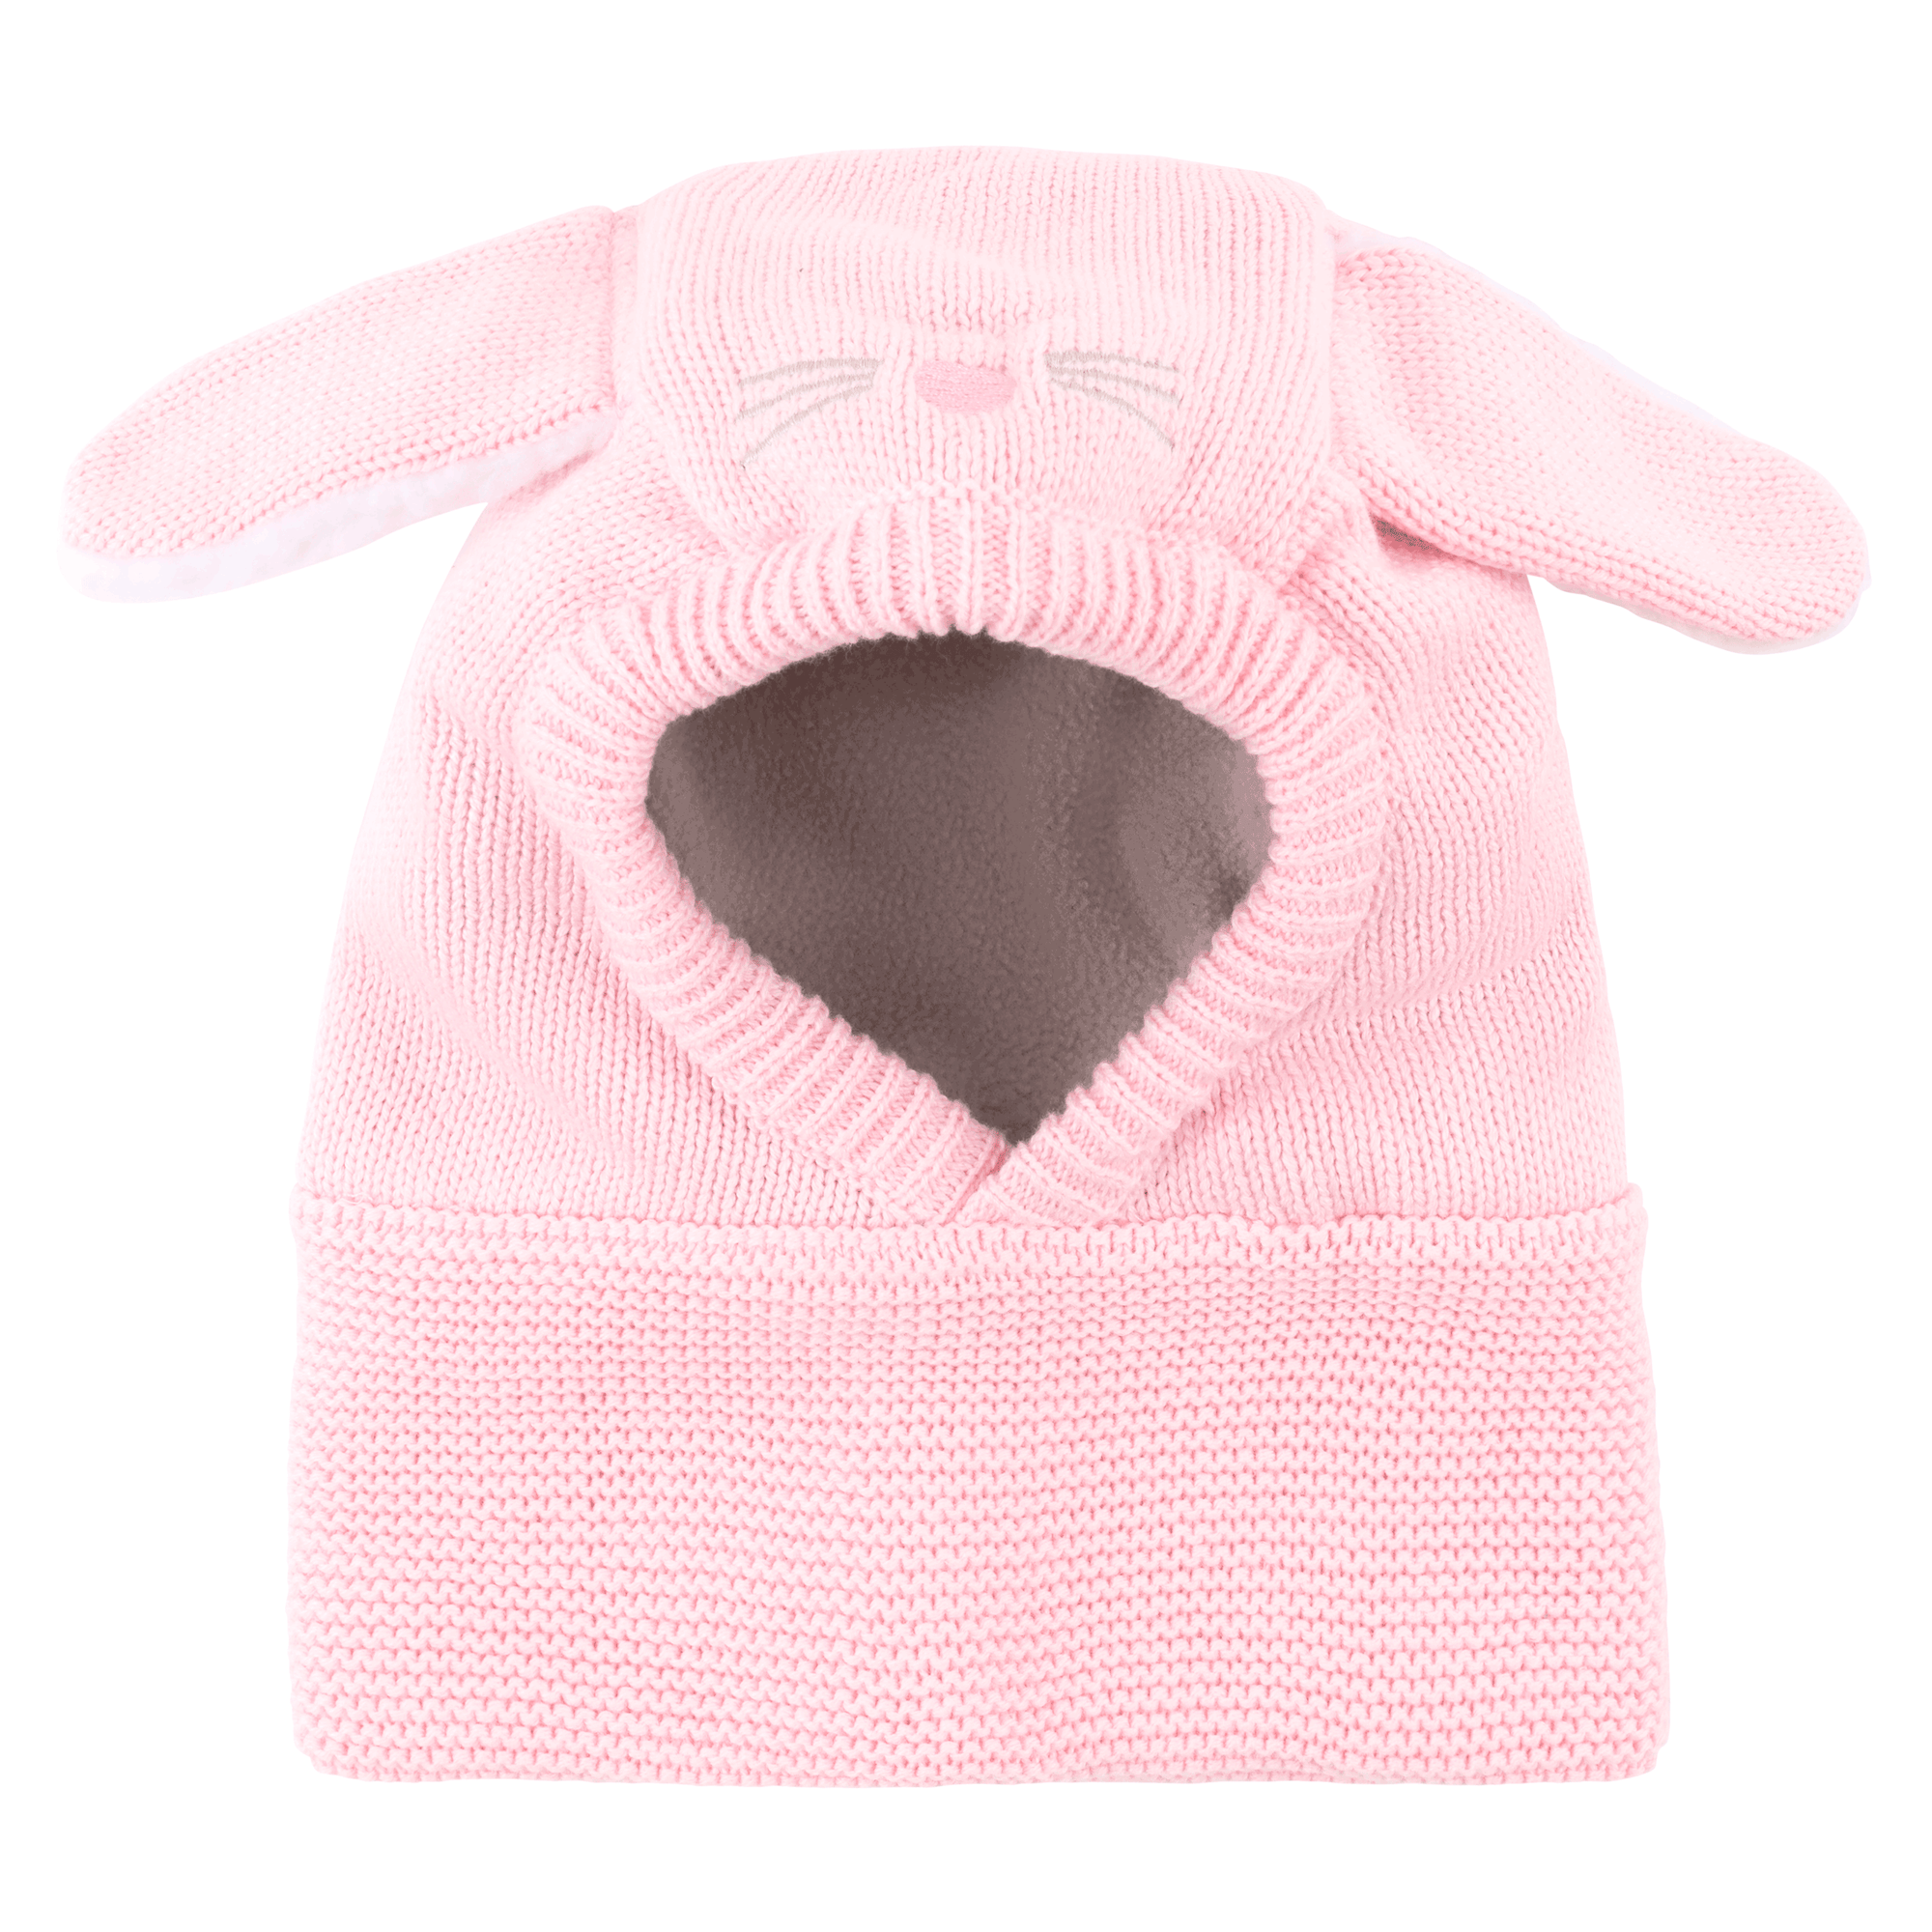 ZOOCCHINI Baby/Toddler Knit Balaclava Hat - Beatrice the Bunny